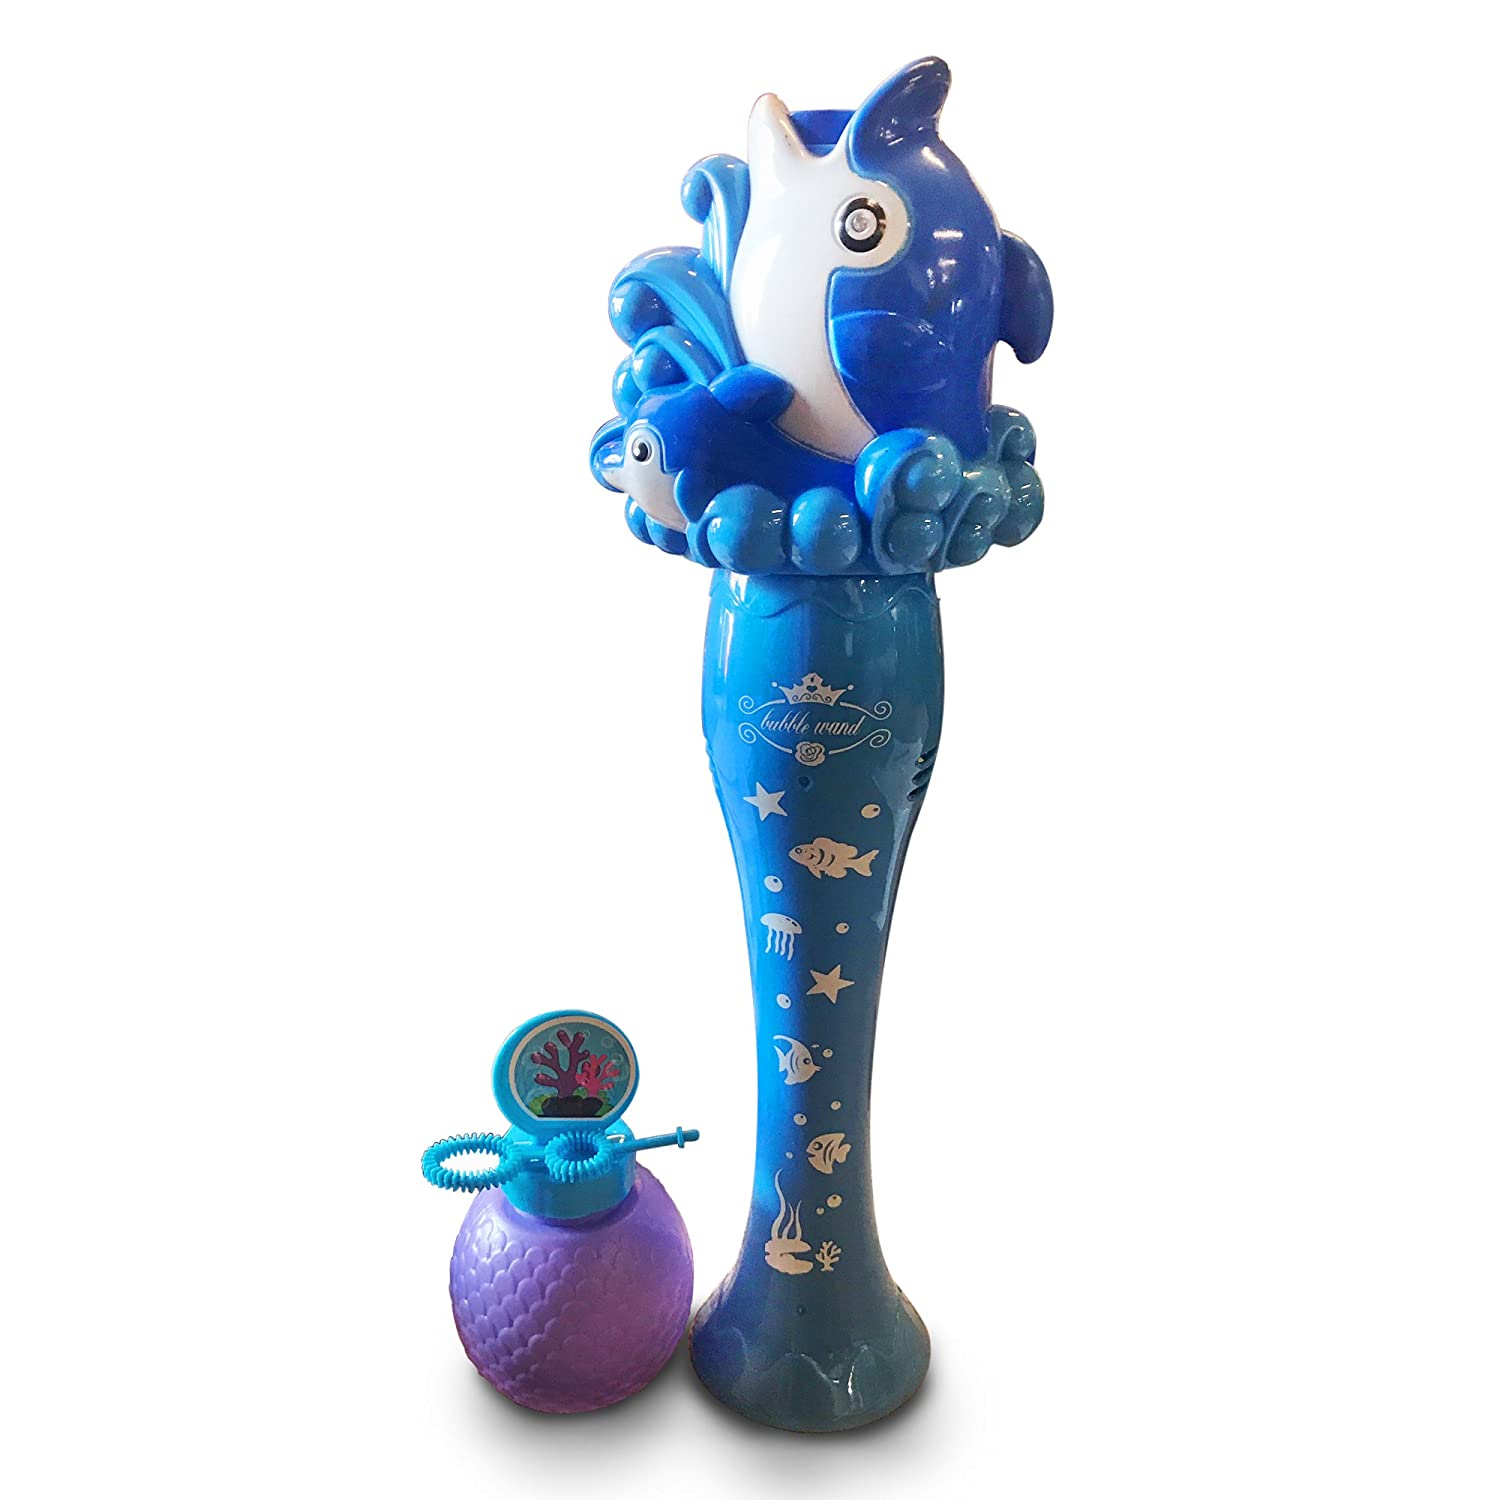 LilPals Light Up Pink The Sea Dolphin Foam Bubble Wand Comes with Special Sea Shell Inspired Bubble Bottle Ocean-Themed Bubble Makers A Classic Gift for Children Made for Hours of Fun